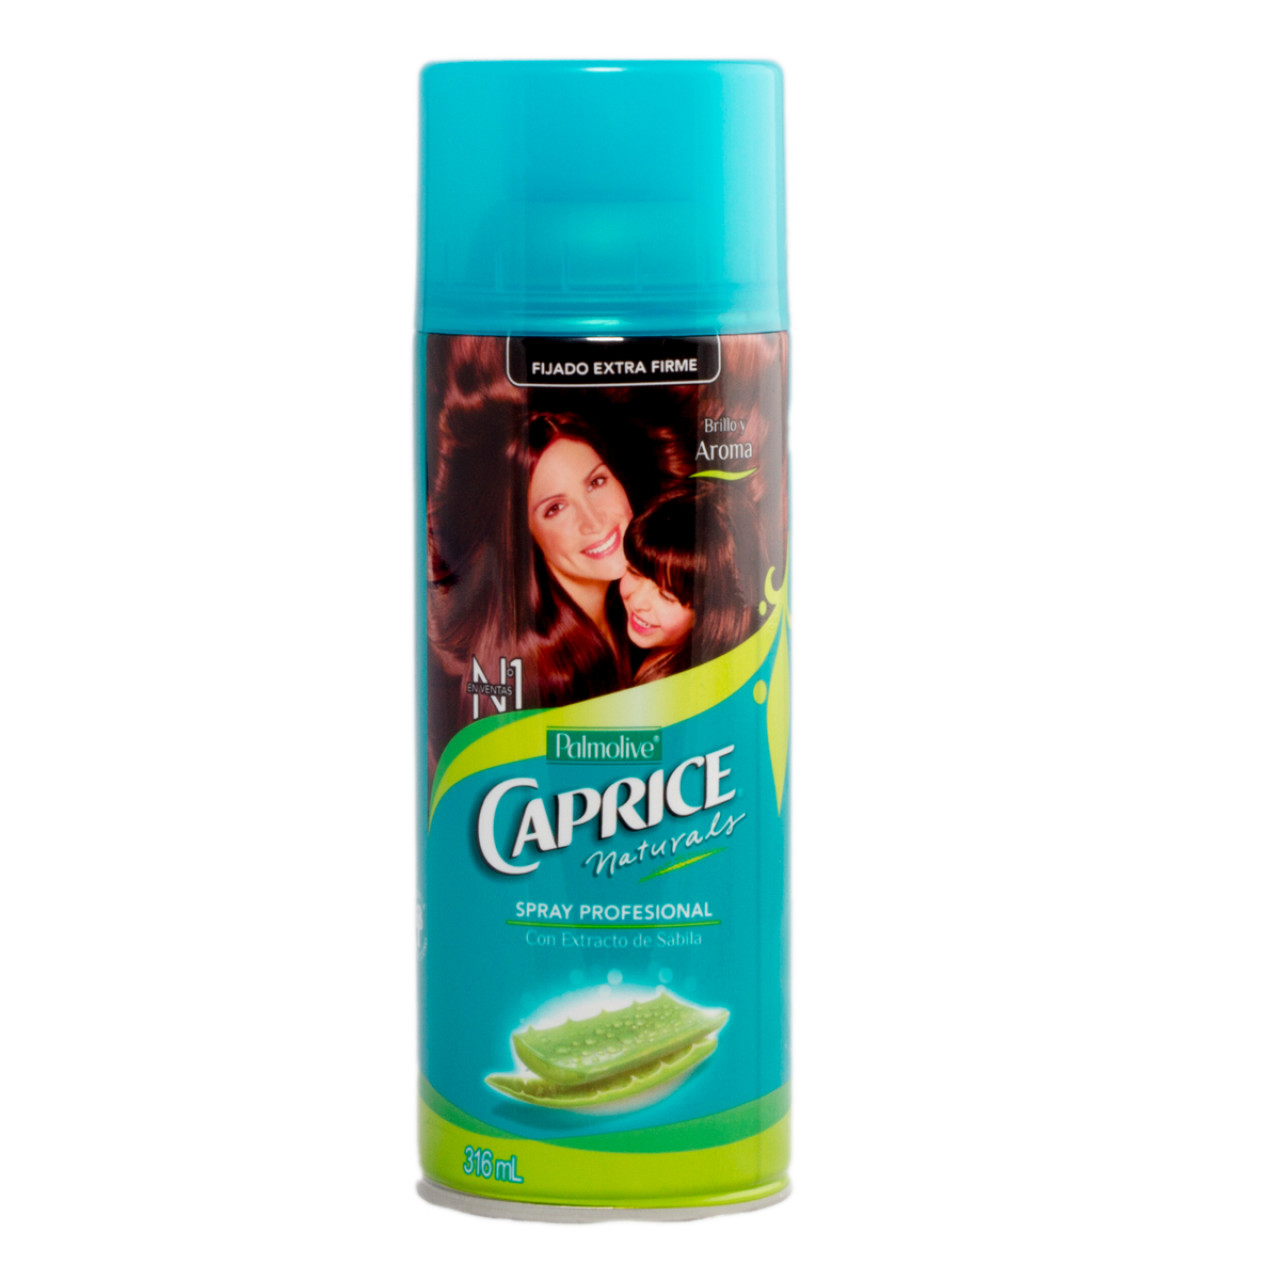 Comprar Caprice Naturals Extra Sabila 1 Frasco Spray 316 Ml